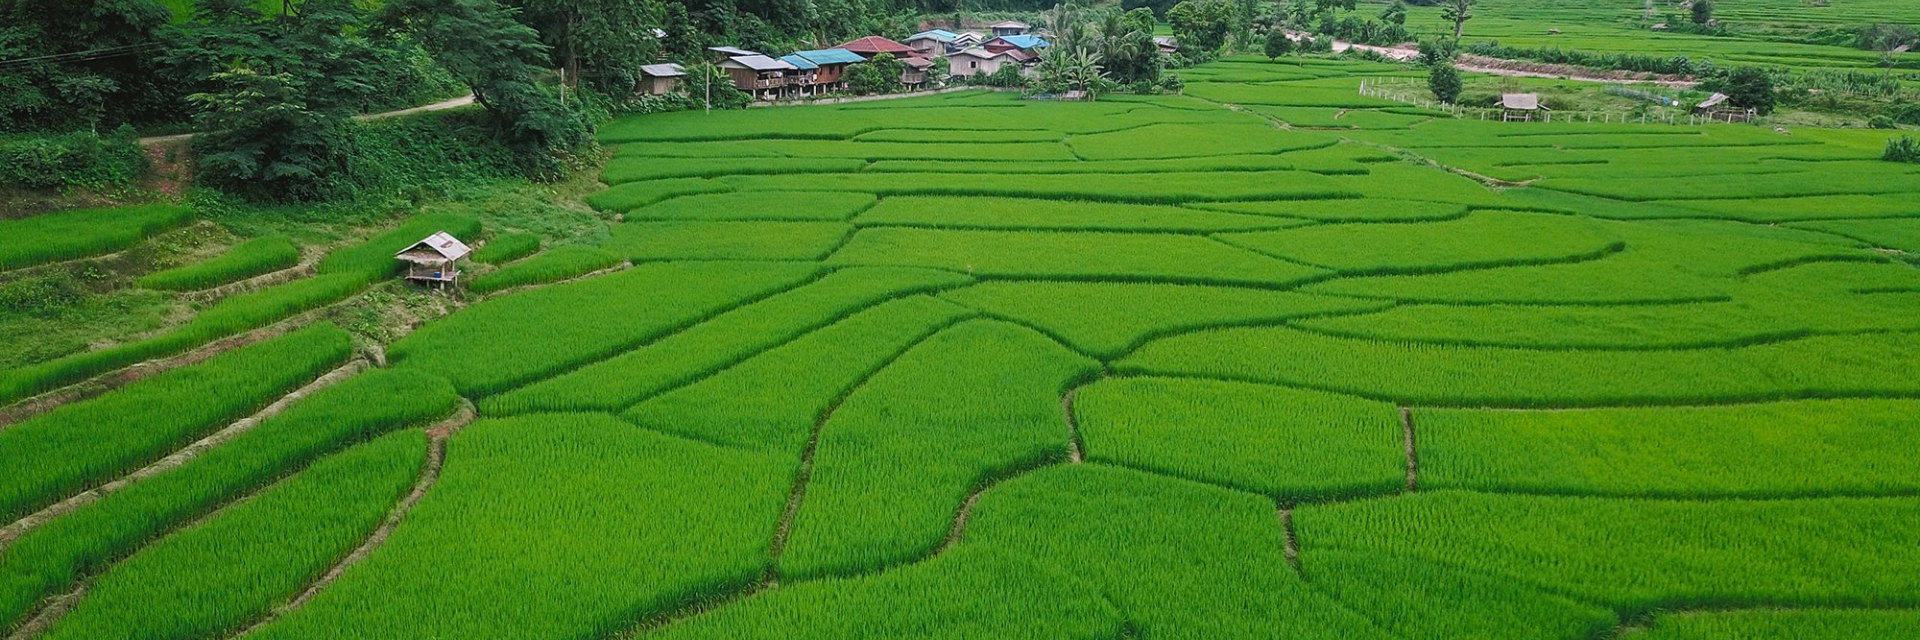 Where to Go in Nan Province on Your Next Holiday